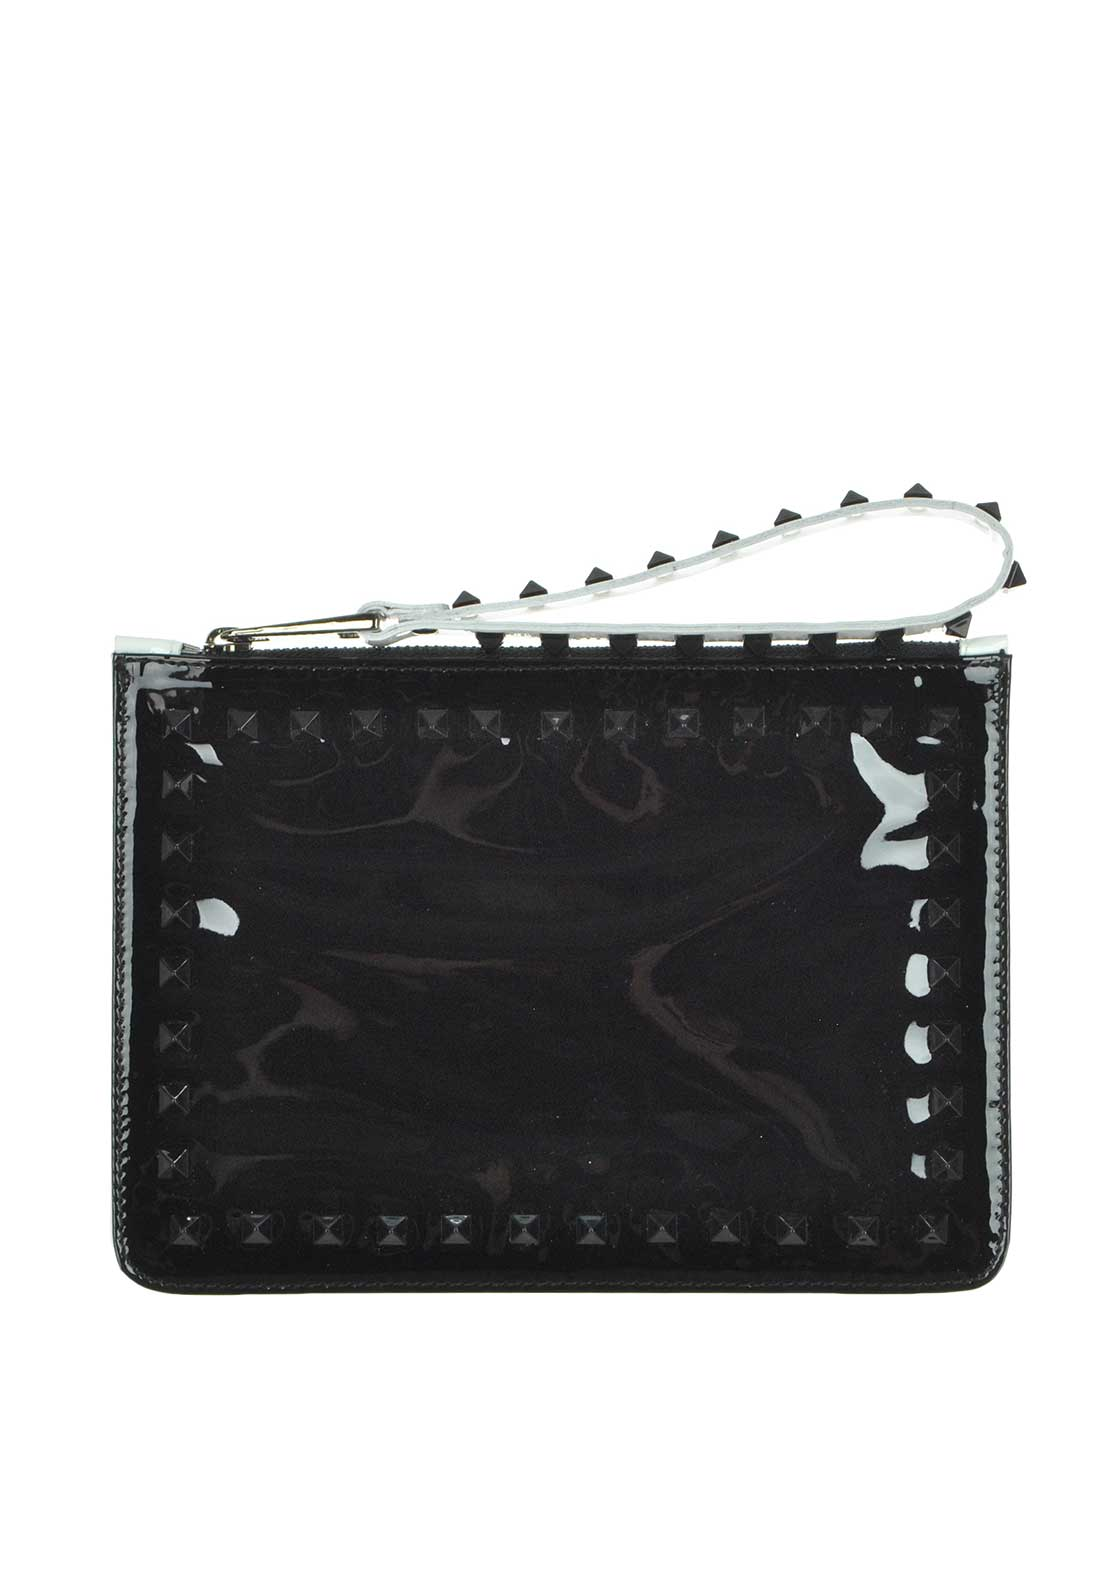 McElhinney's by Lodi Reich Leather Patent Studded Clutch Bag, Black and White